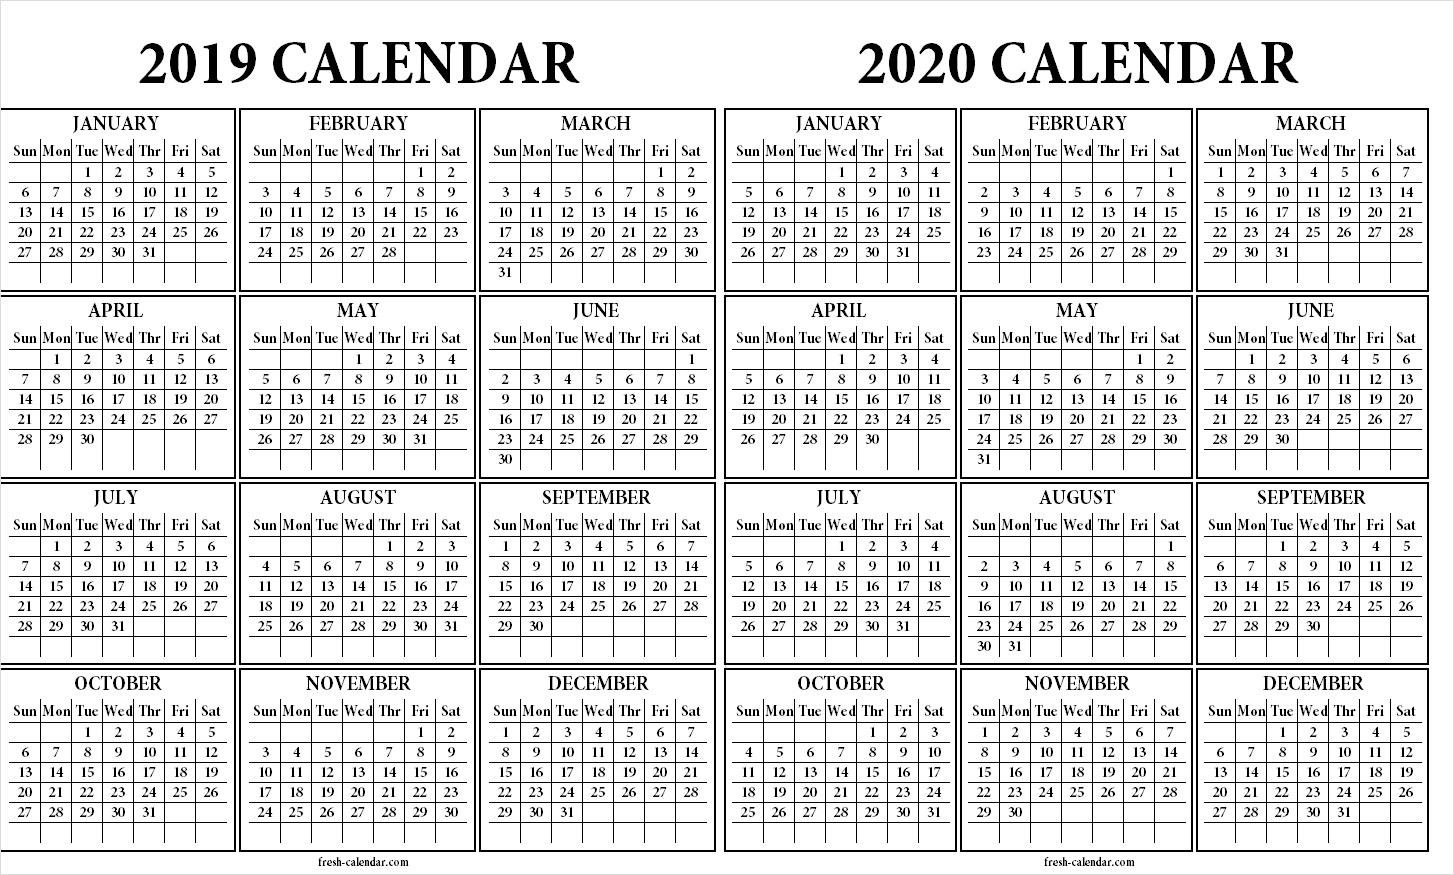 2020 Calendar Wallpapers - Wallpaper Cave with Sample One Page Multi Year Calendars Image